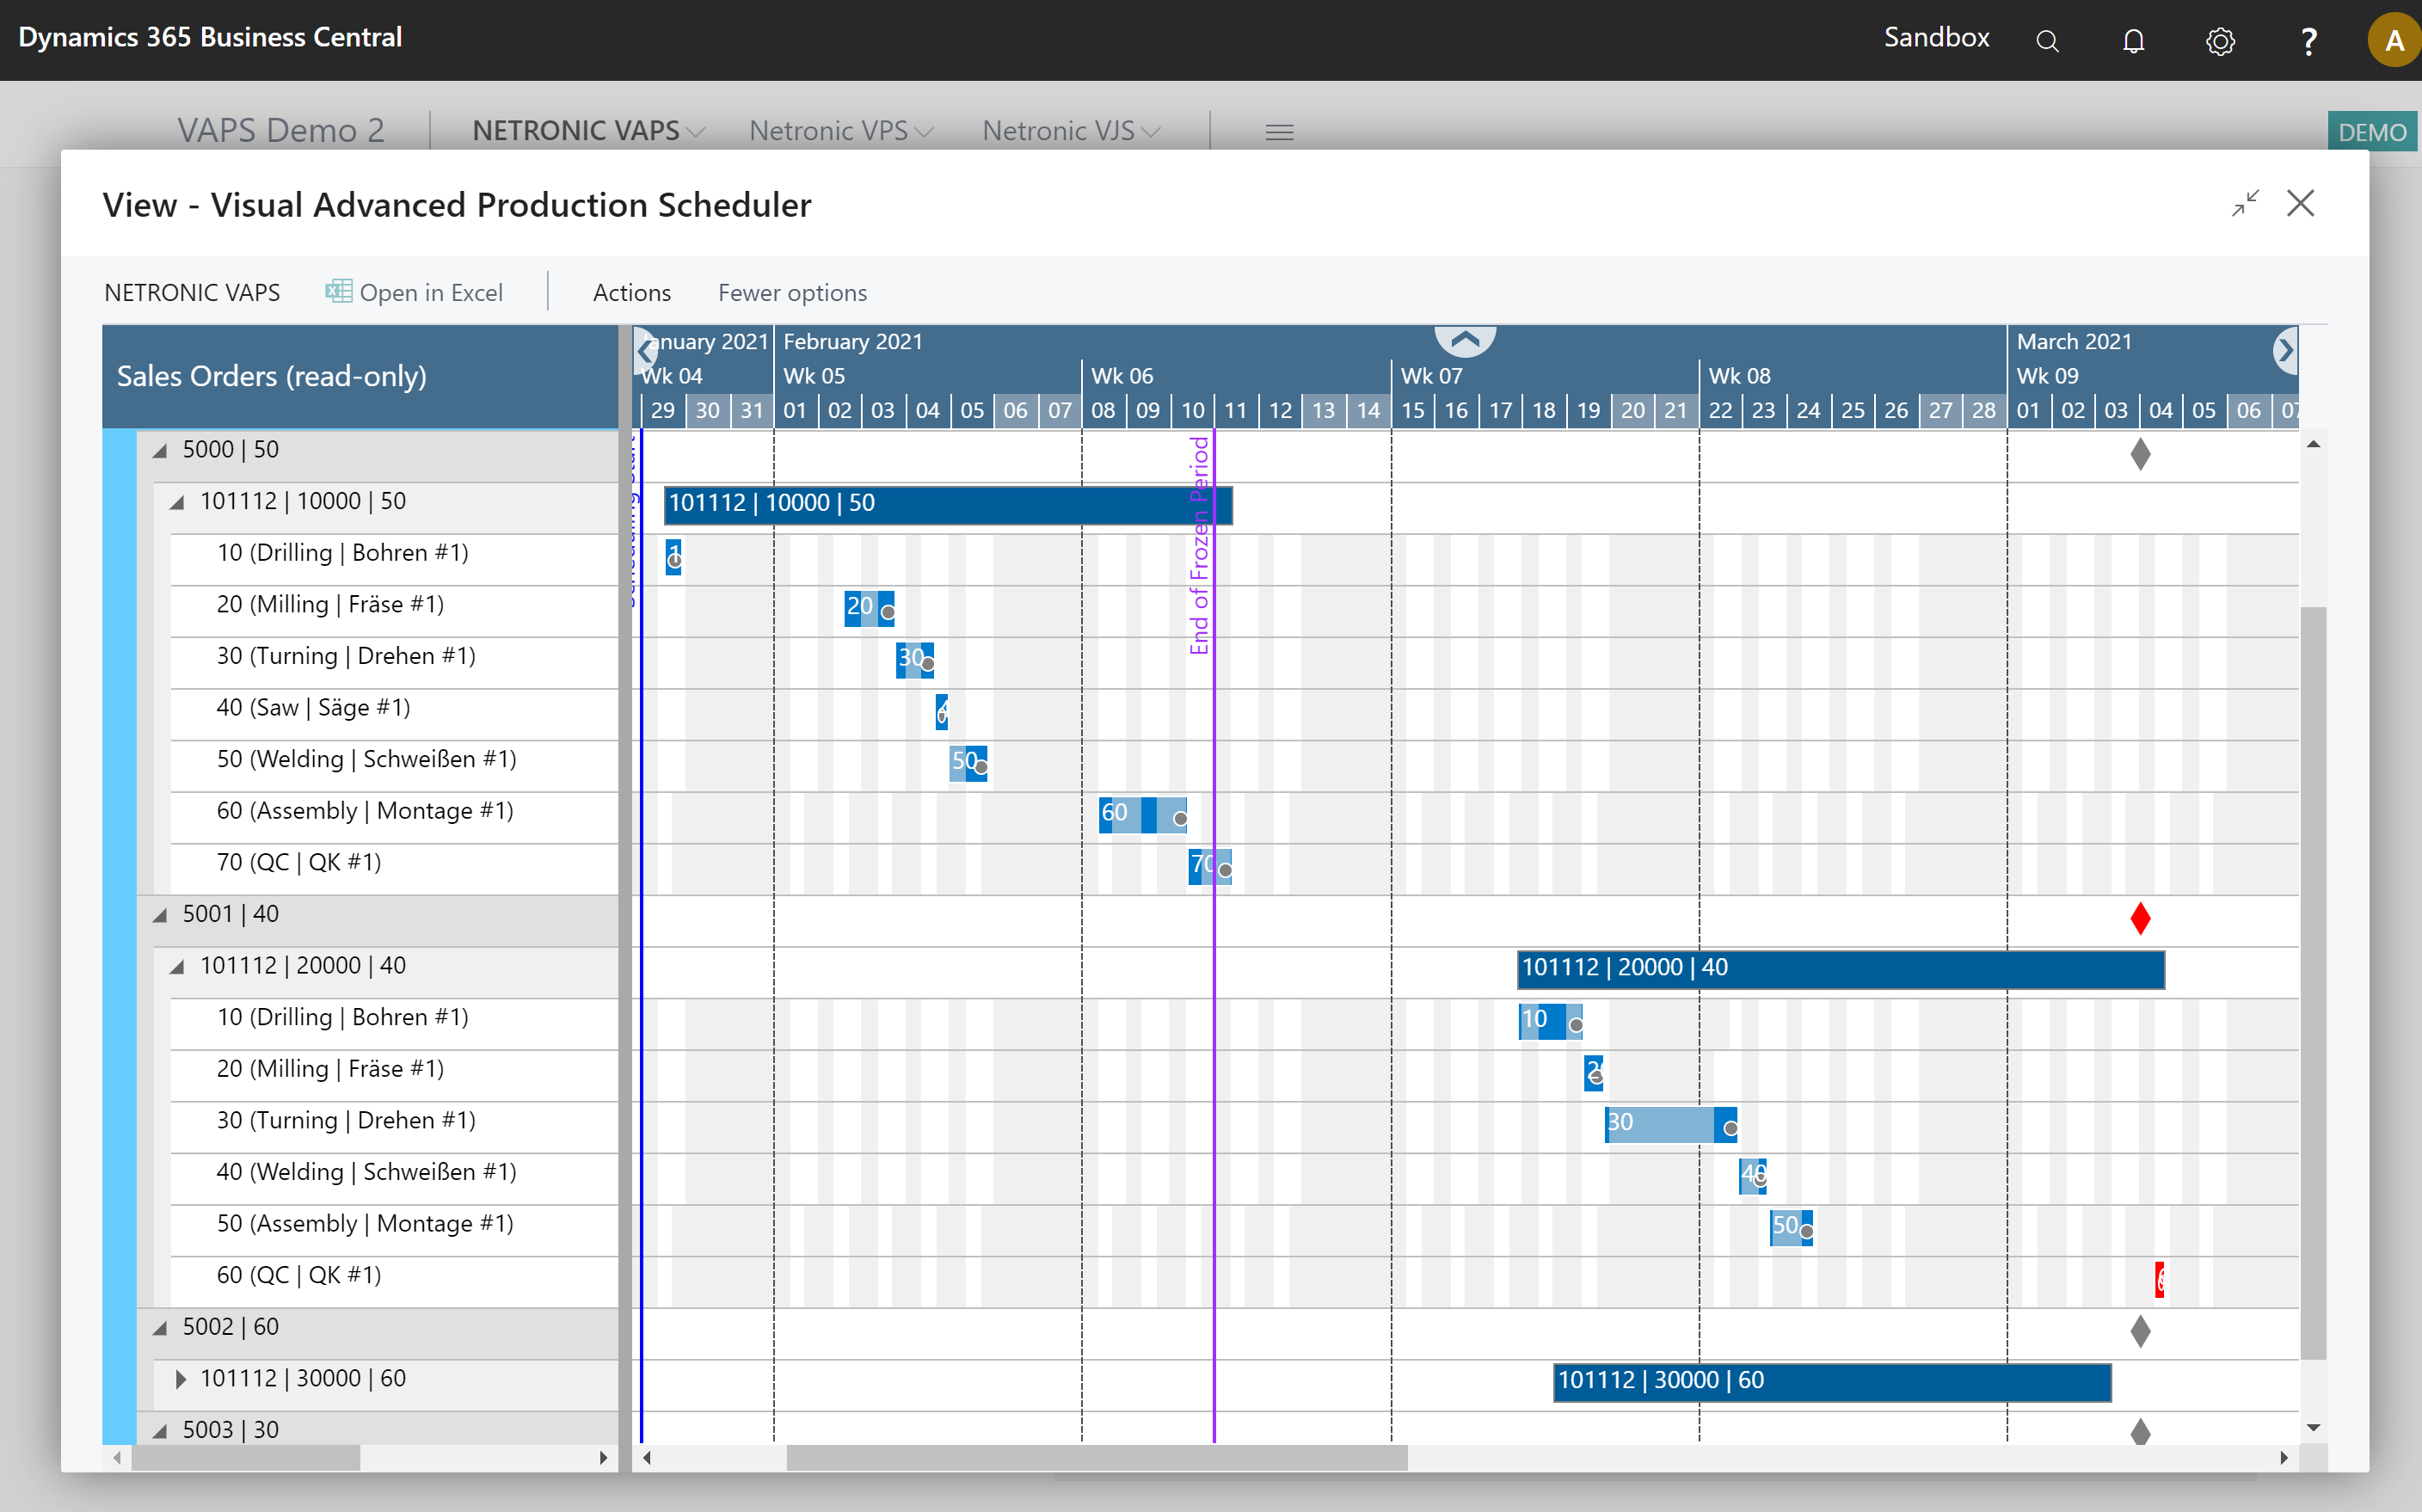 Visual Advanced Production Scheduler for Microsoft Dynamics 365 Business Central - Sales Order View